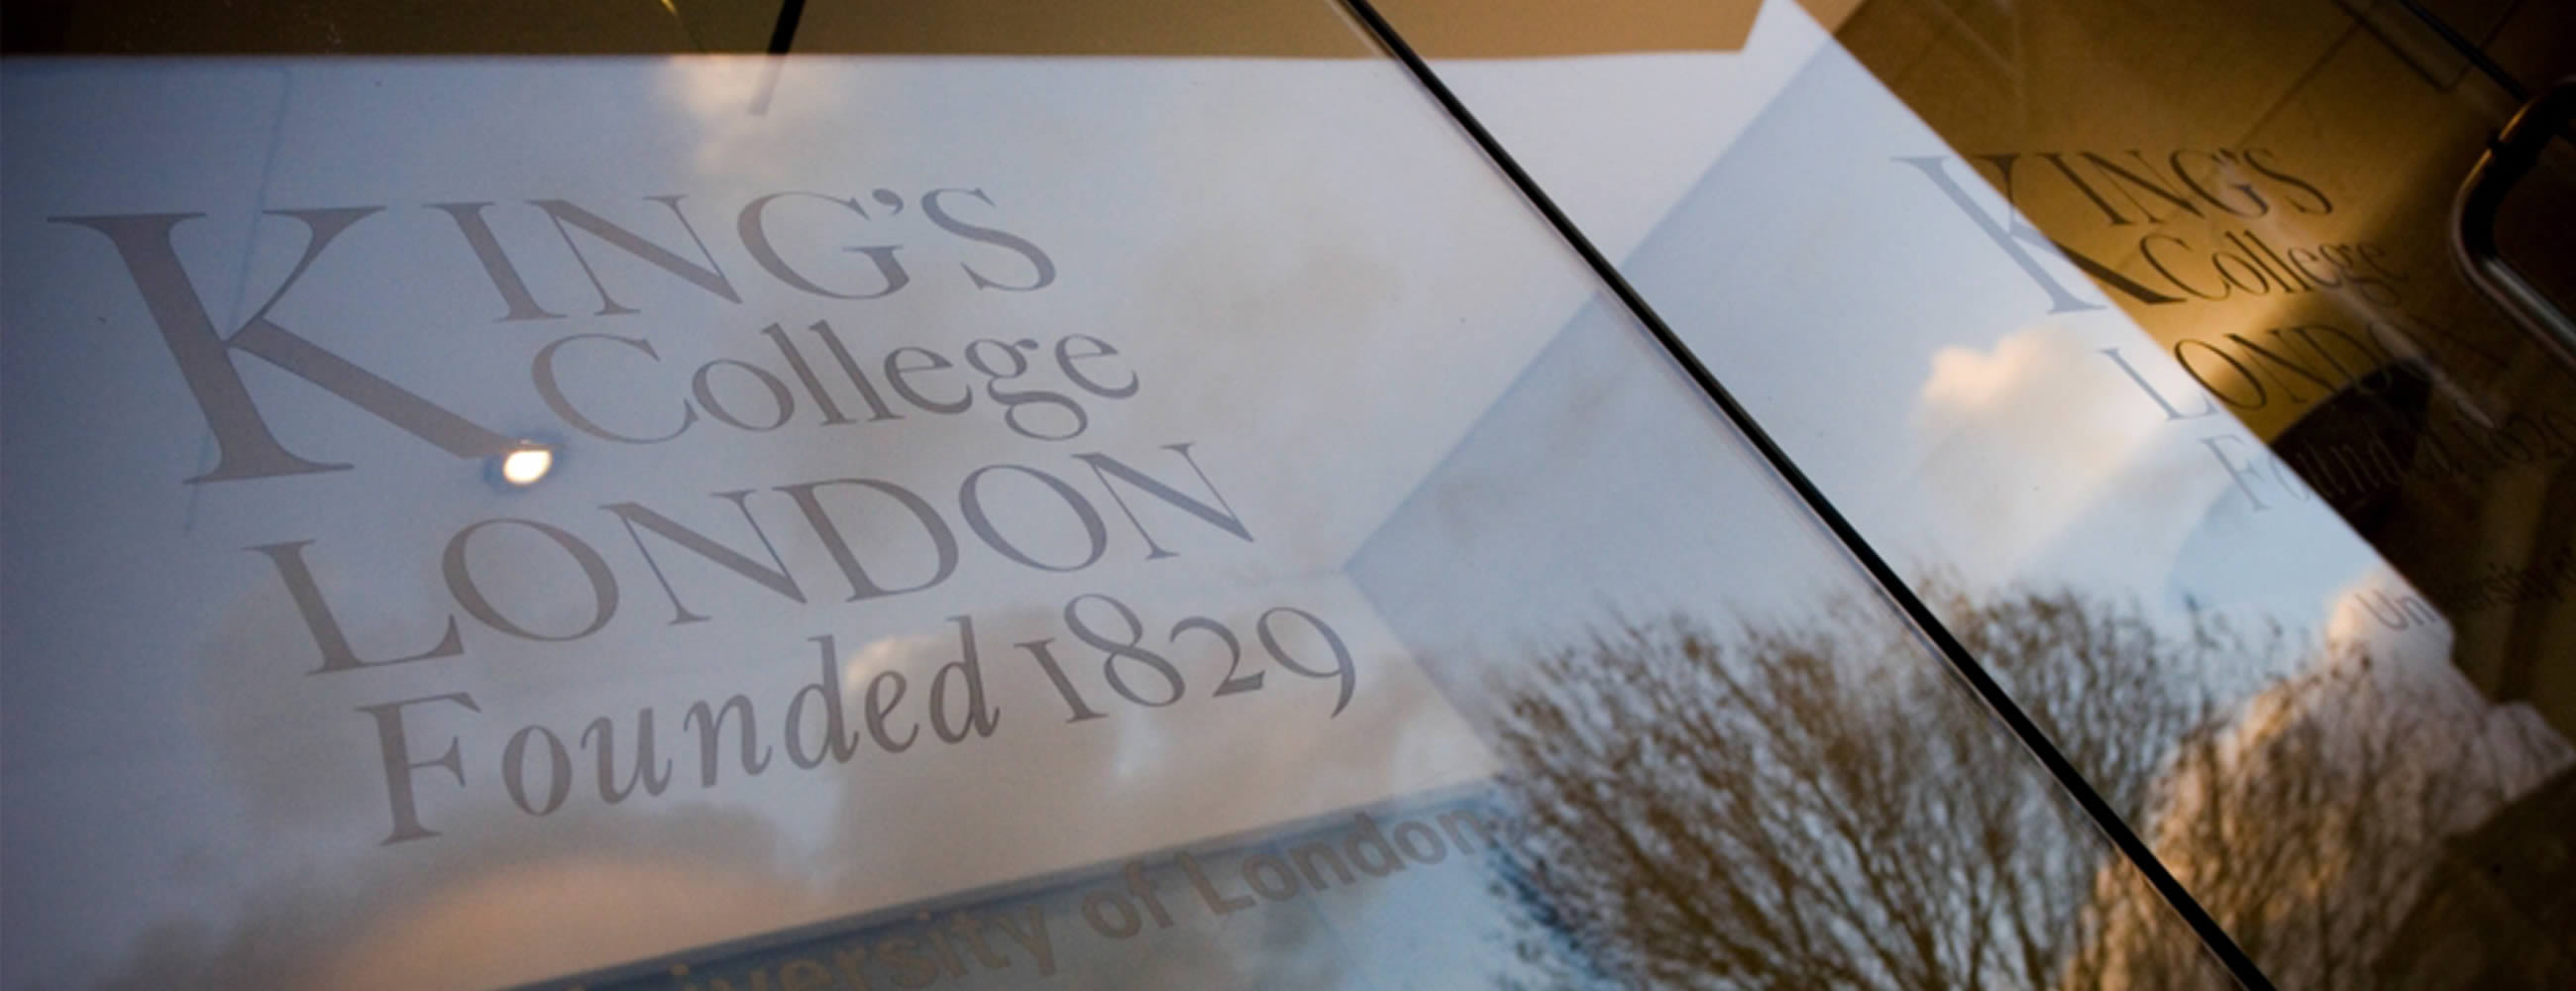 Kings College window graphics in London